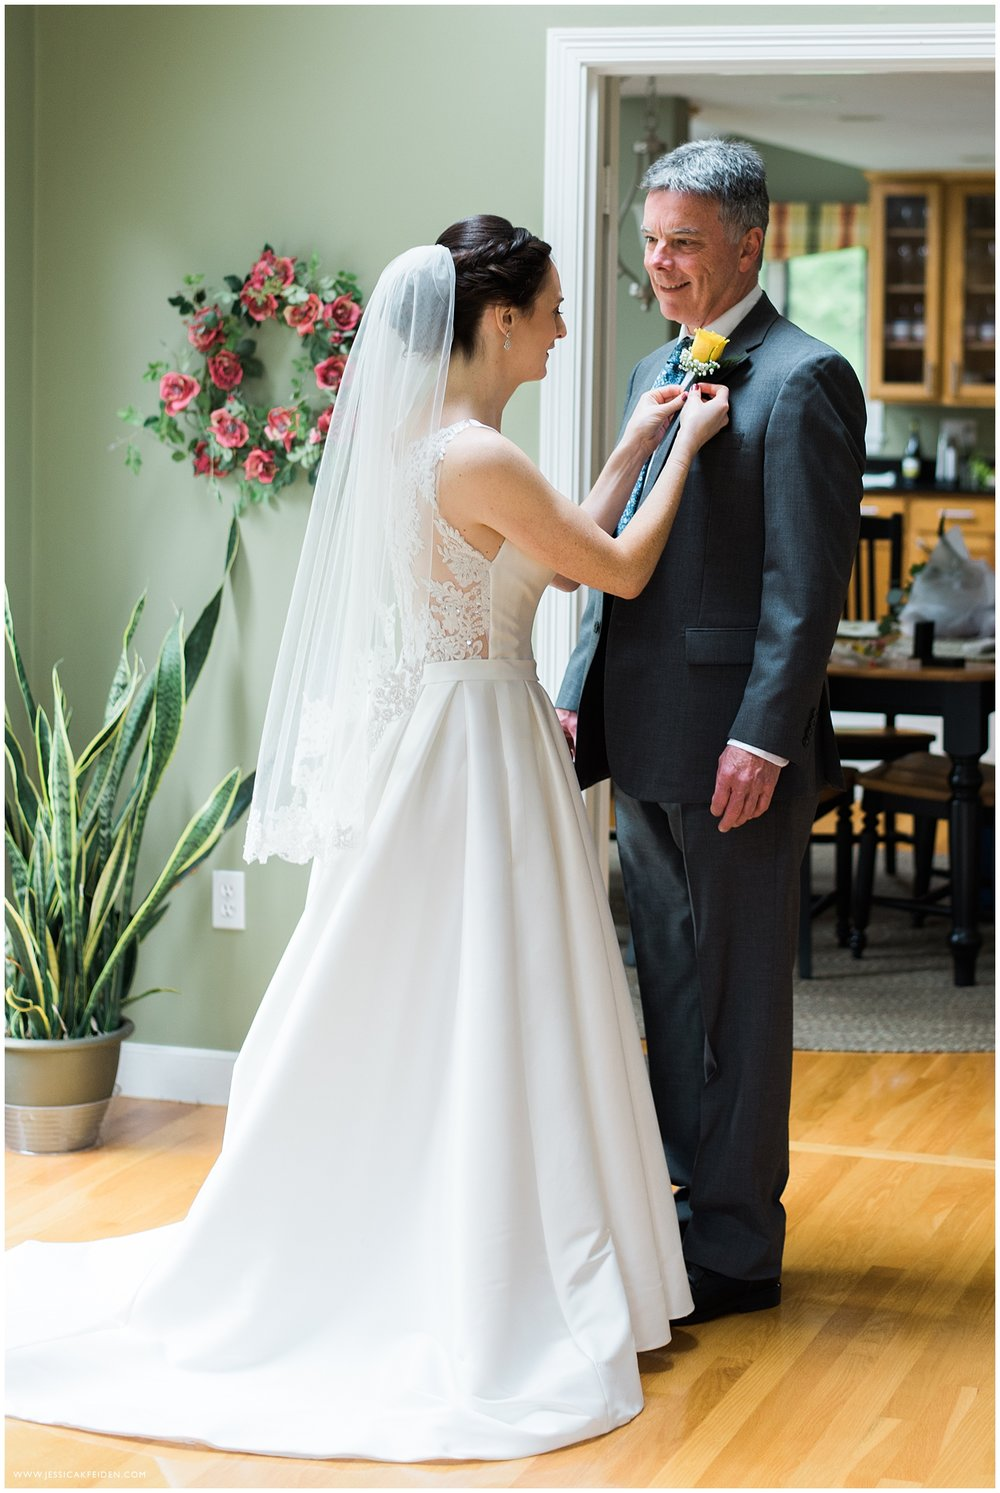 Jessica K Feiden Photography_Publick House Inn Wedding Photographer_0014.jpg